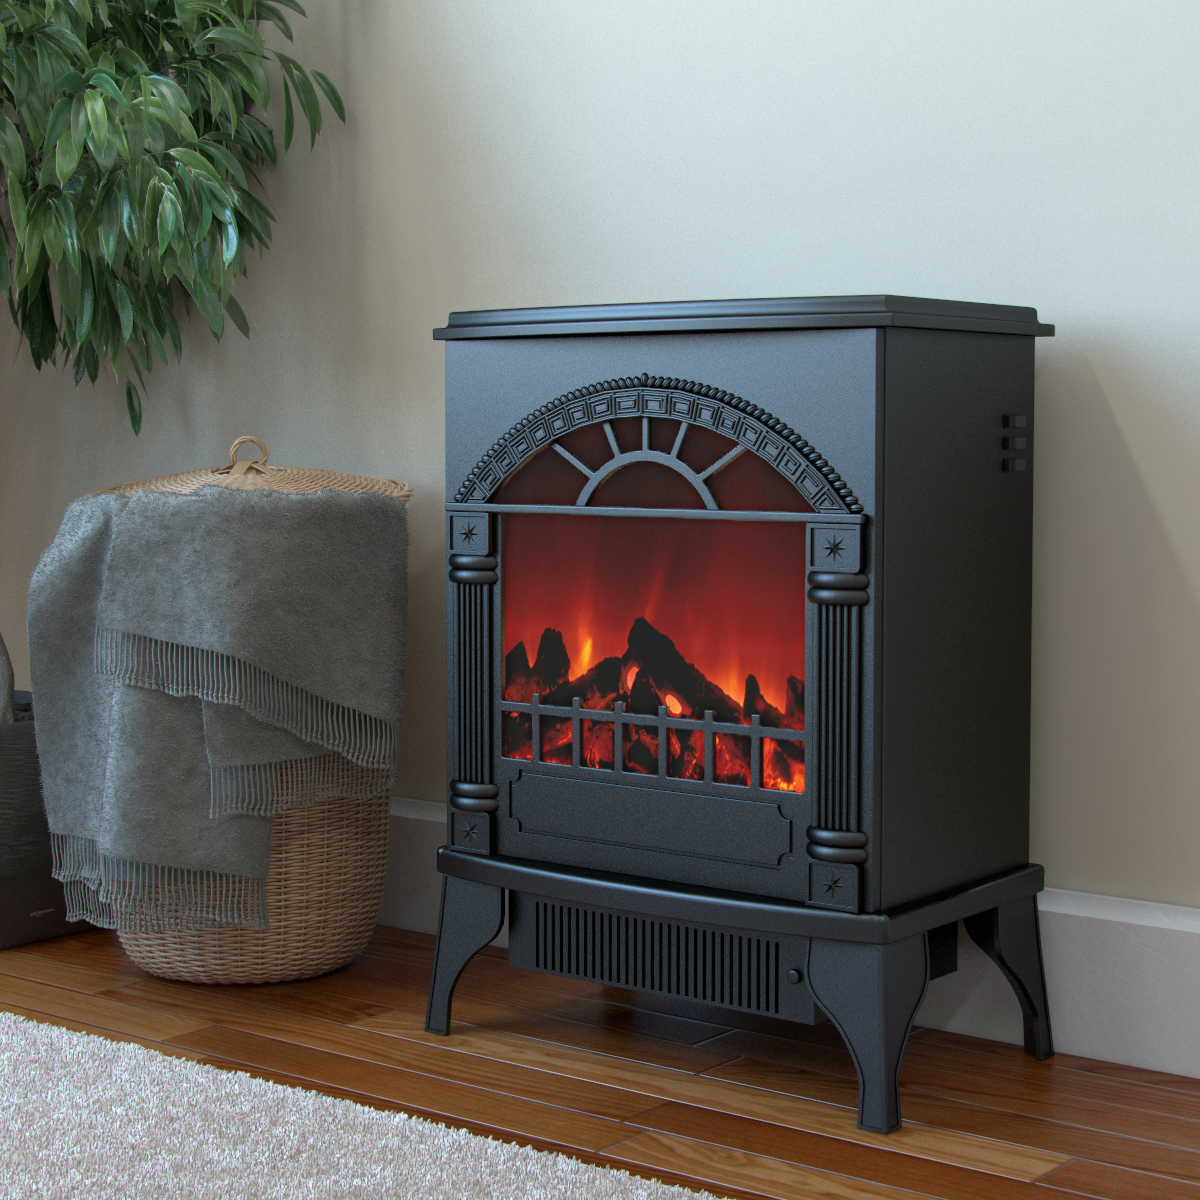 Apollo Electric Fireplace Free Standing Portable Space Heater Stove